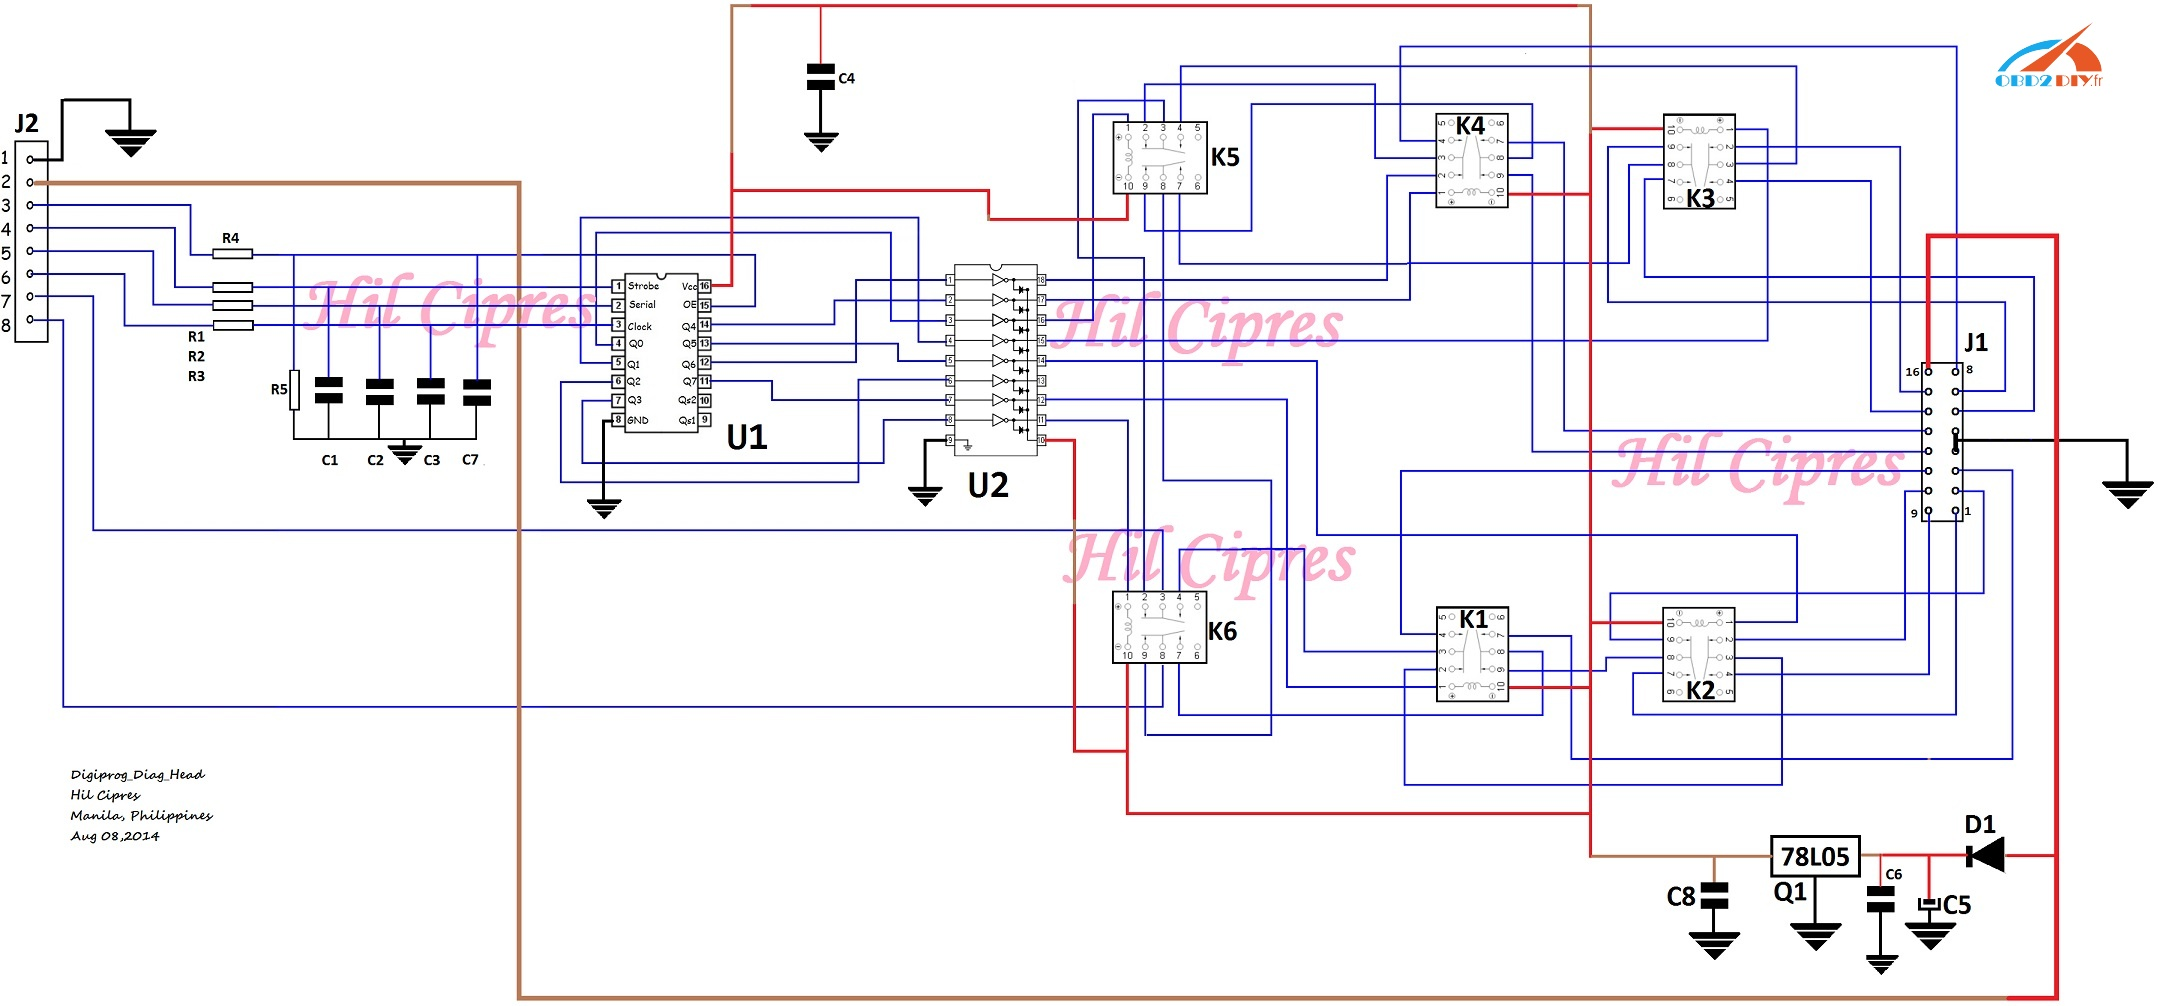 digiprog-3-OBDII-Schematic